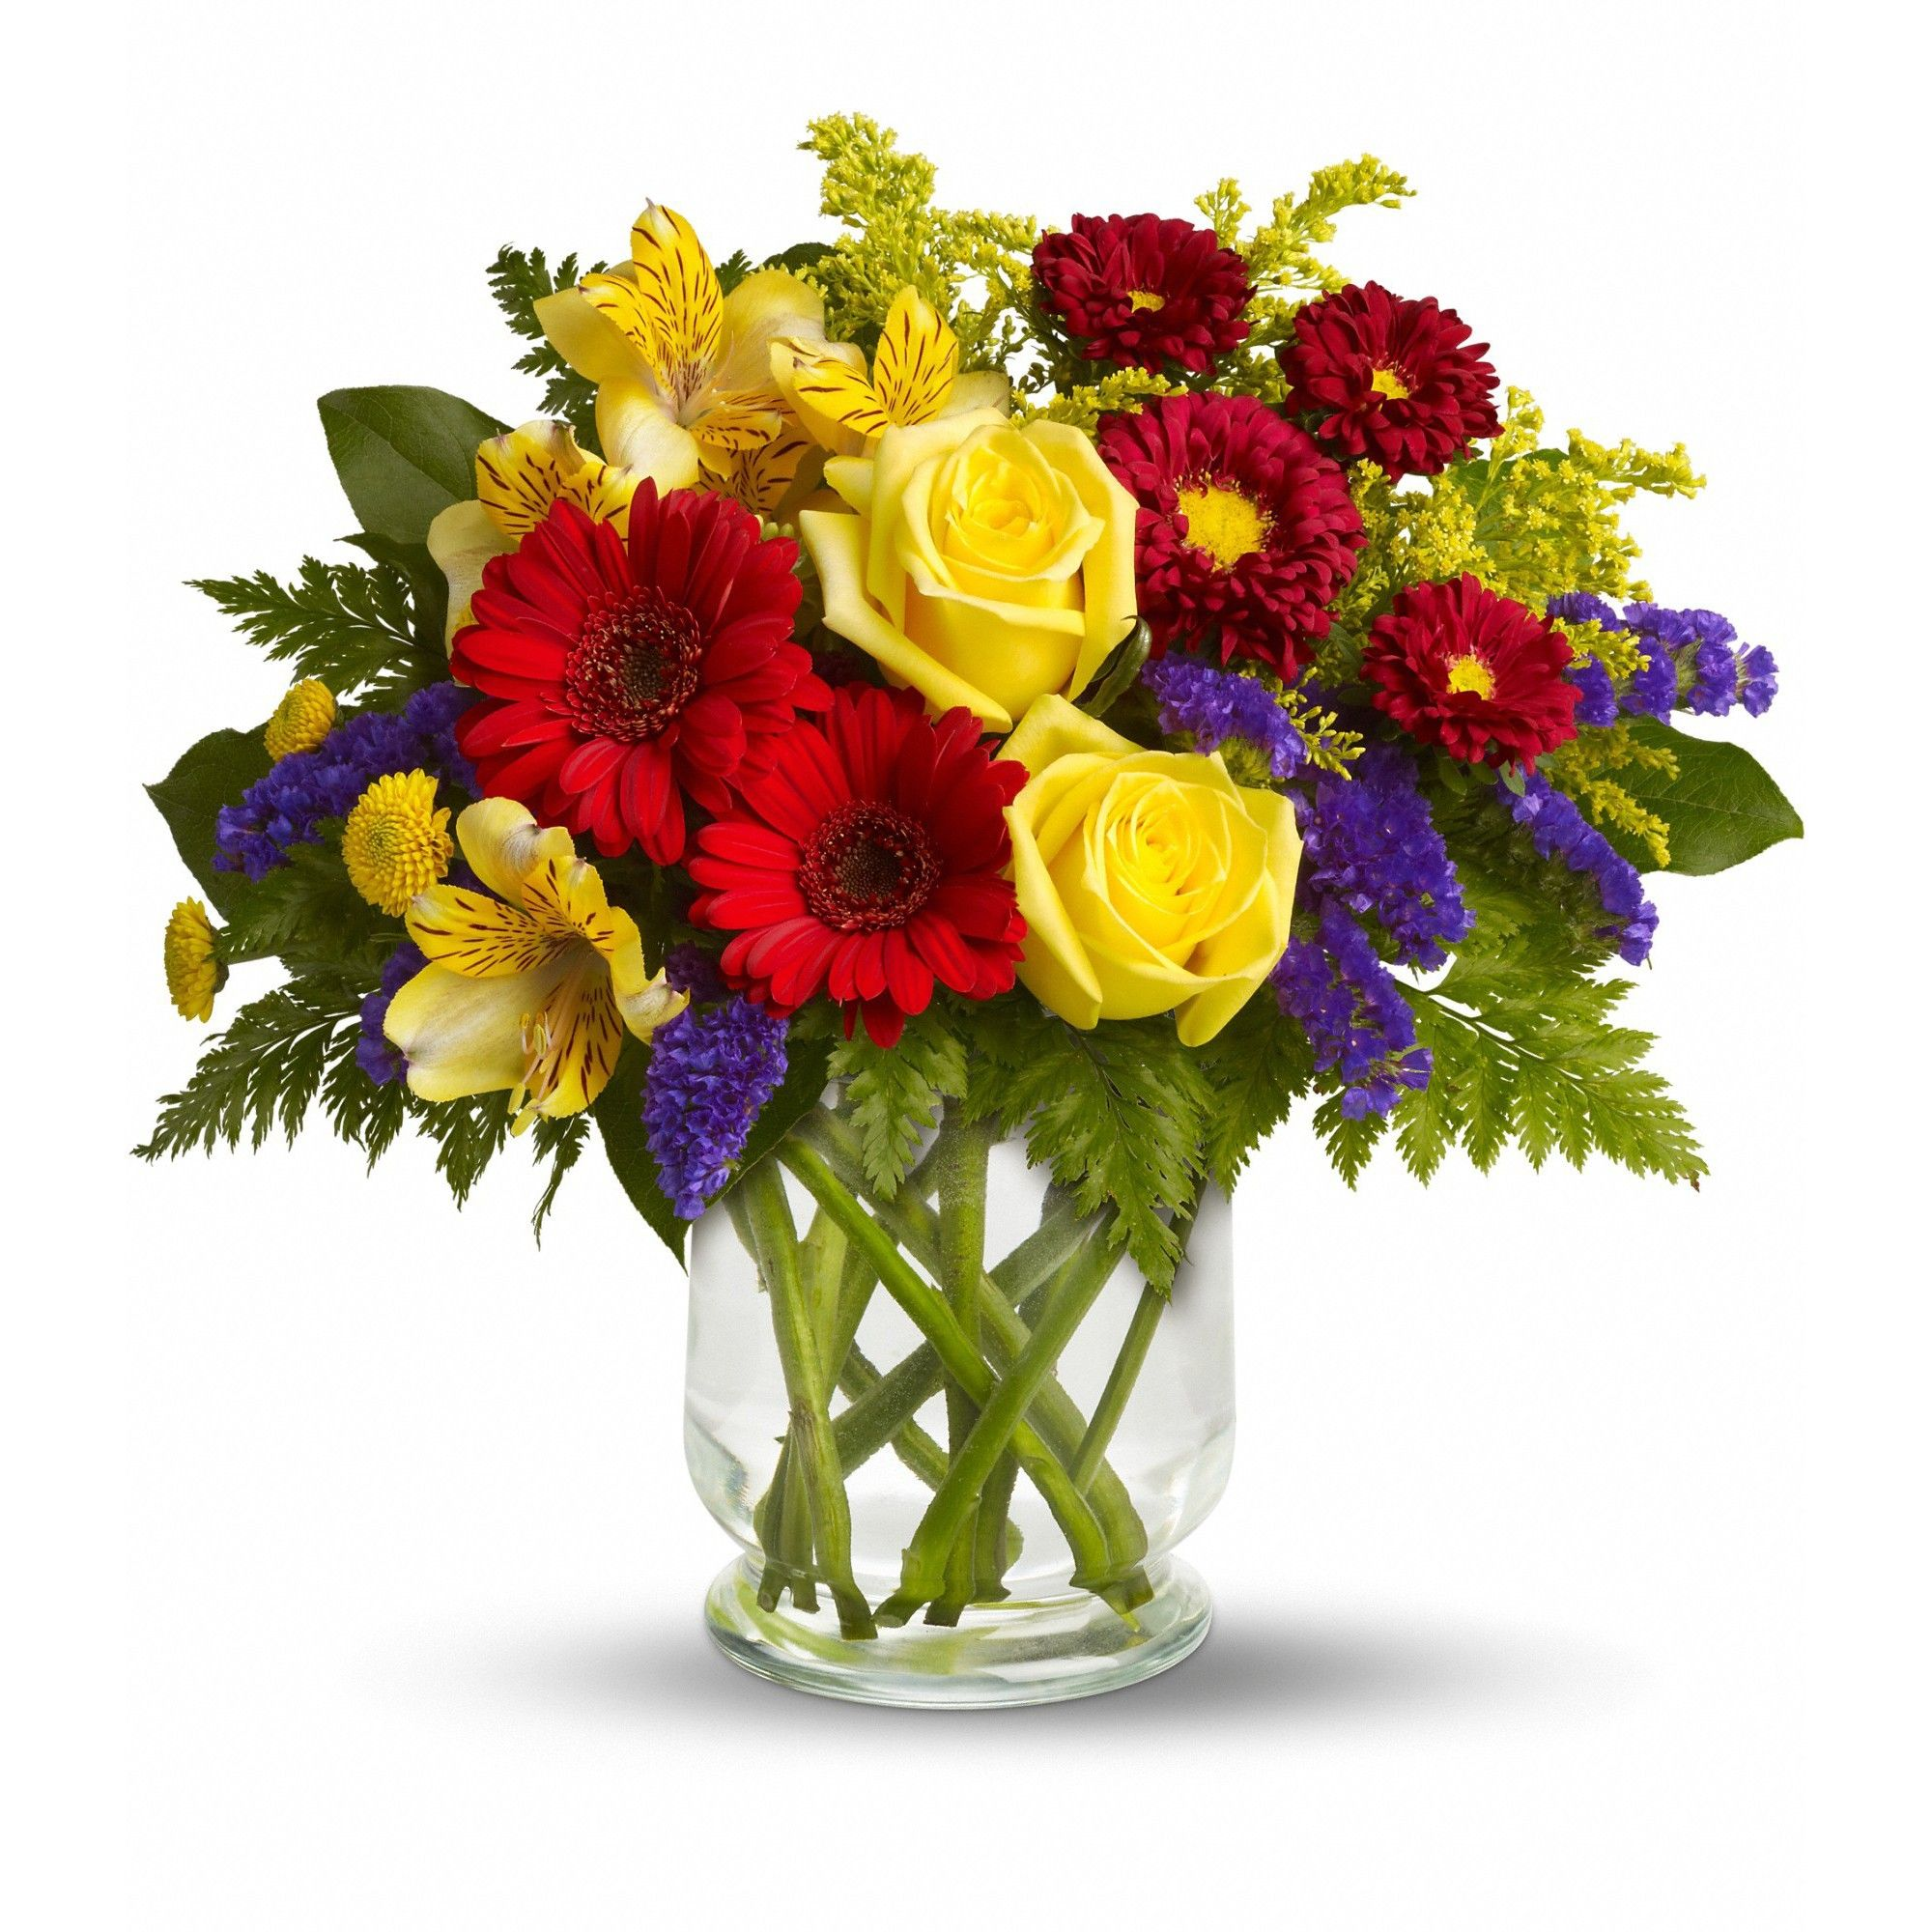 12 Beautiful Flower Bouquets 12 Gynyr Virgcsokor Megaport